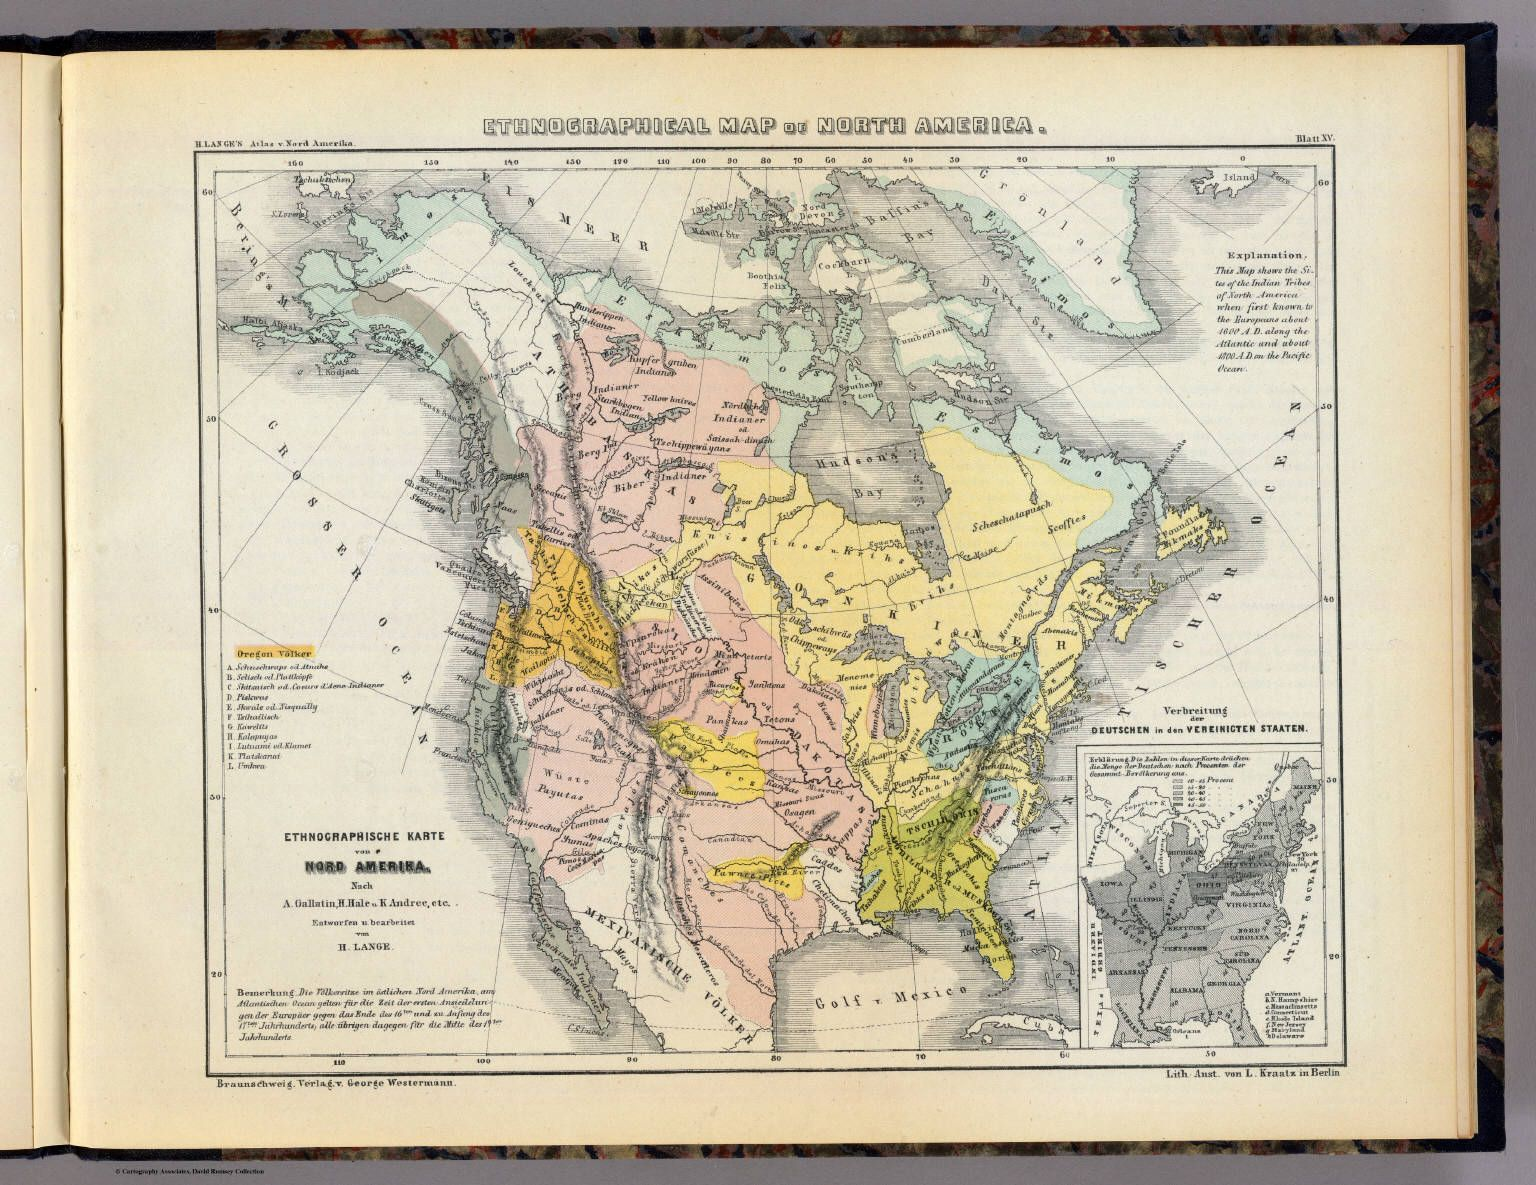 Ethnographic map of North America